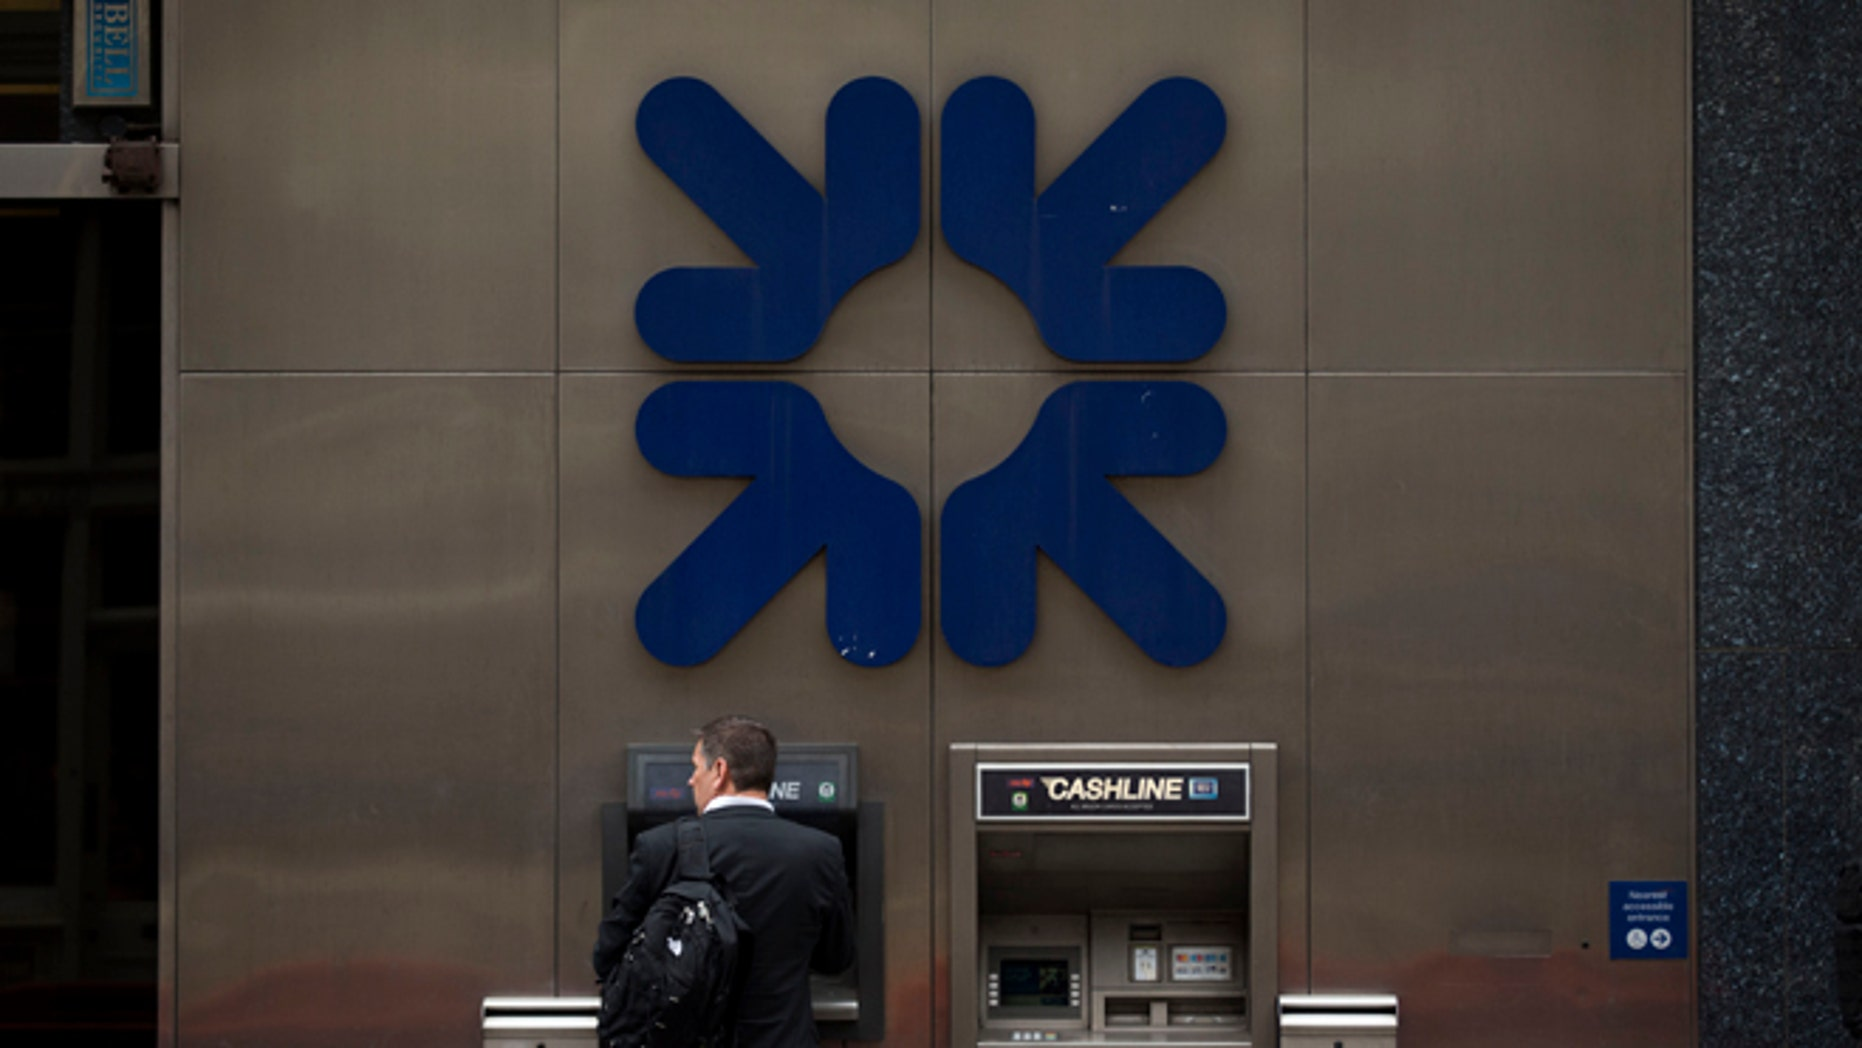 June 13, 2013: A man stands under a RBS, Royal Bank of Scotland, logo as he uses an ATM outside a branch of the bank in London.